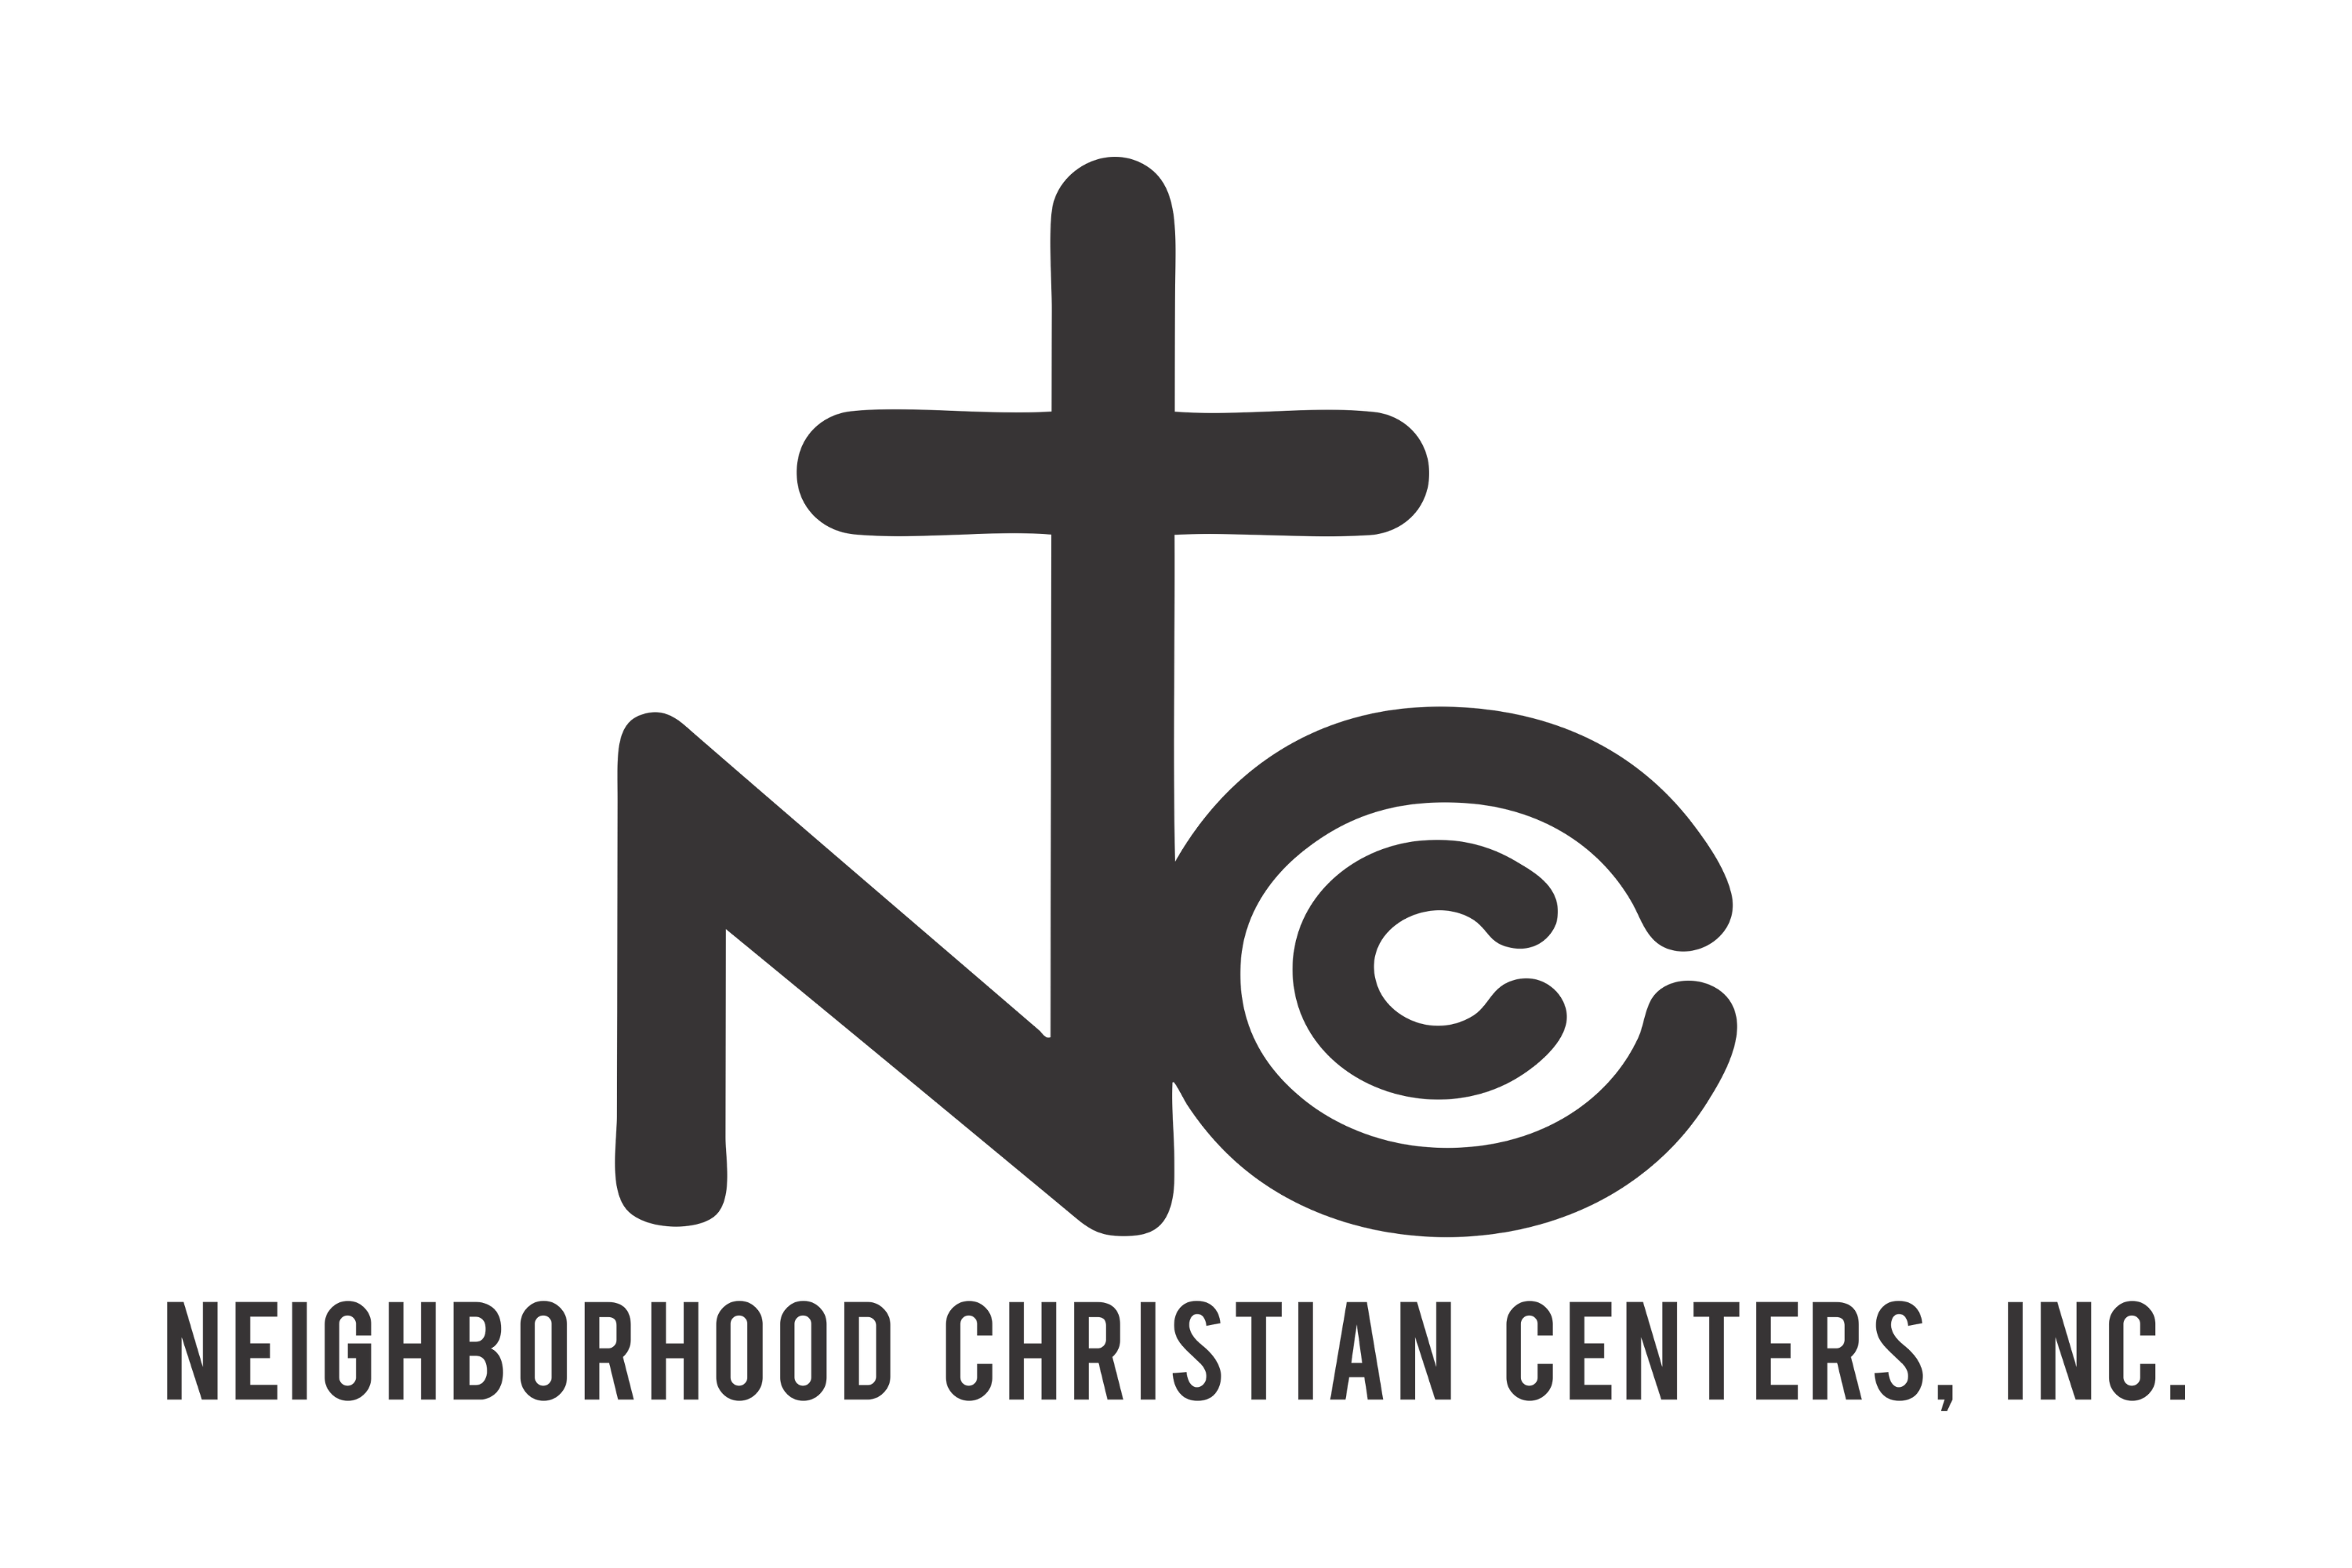 Neighborhood Christian Centers